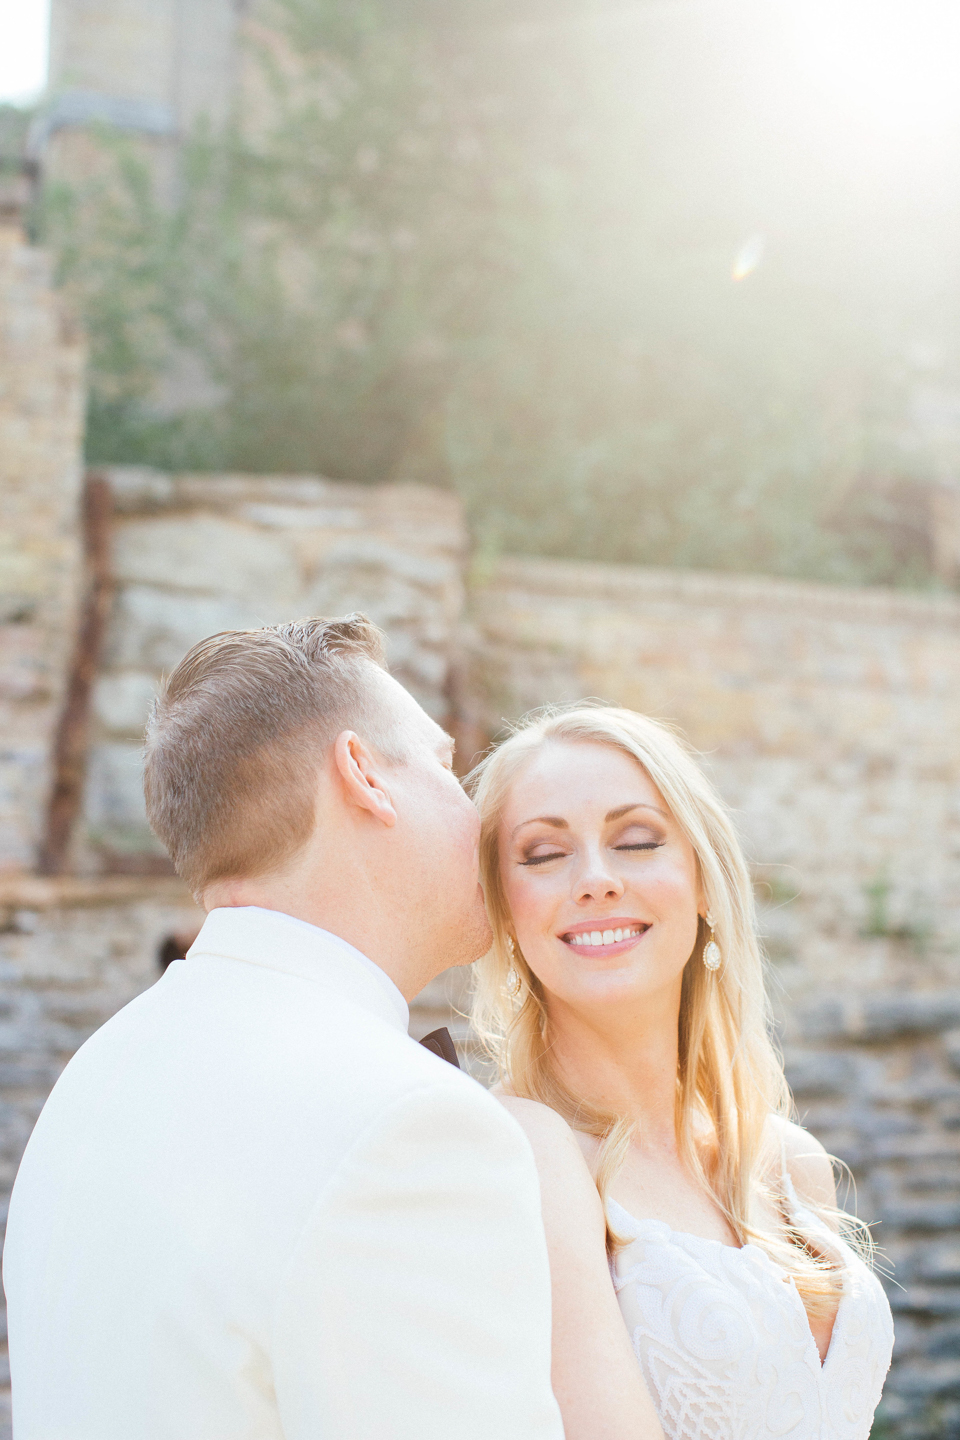 The Mill City Ruins wedding photography